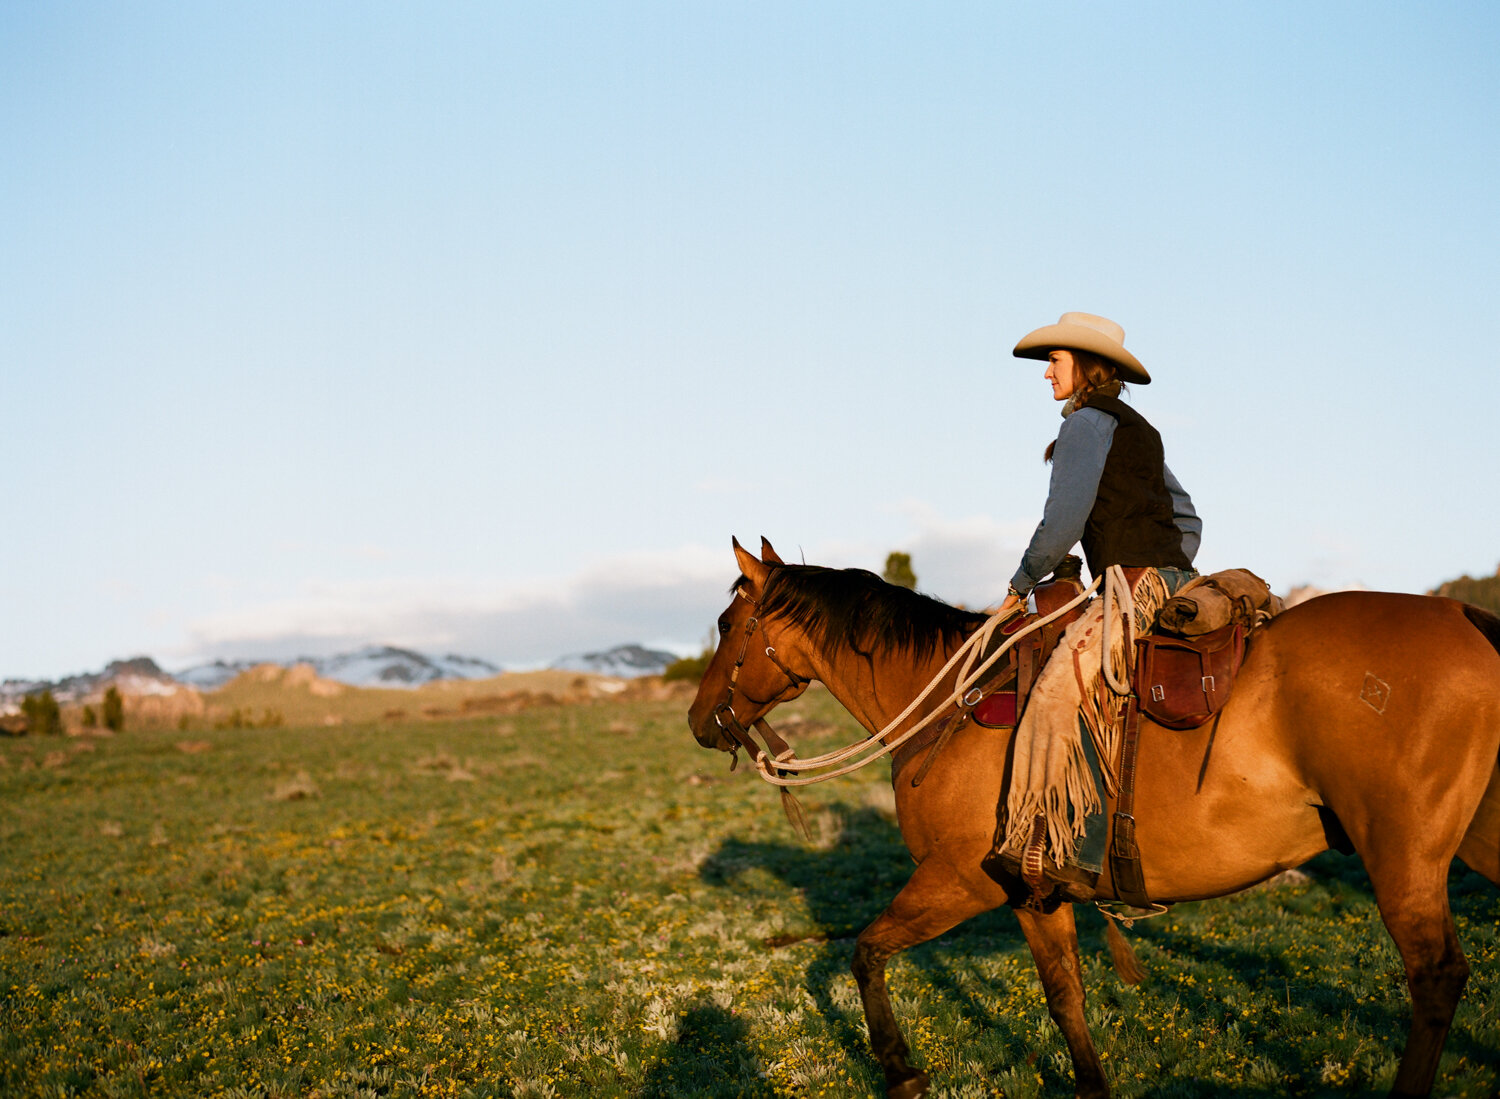 Jessie spends half the year living off the grid and running her family's guest ranch, The Allen's Diamond 4, Wyoming's highest elevation guest ranch located at 9,200 feet in the Wind River Mountains.